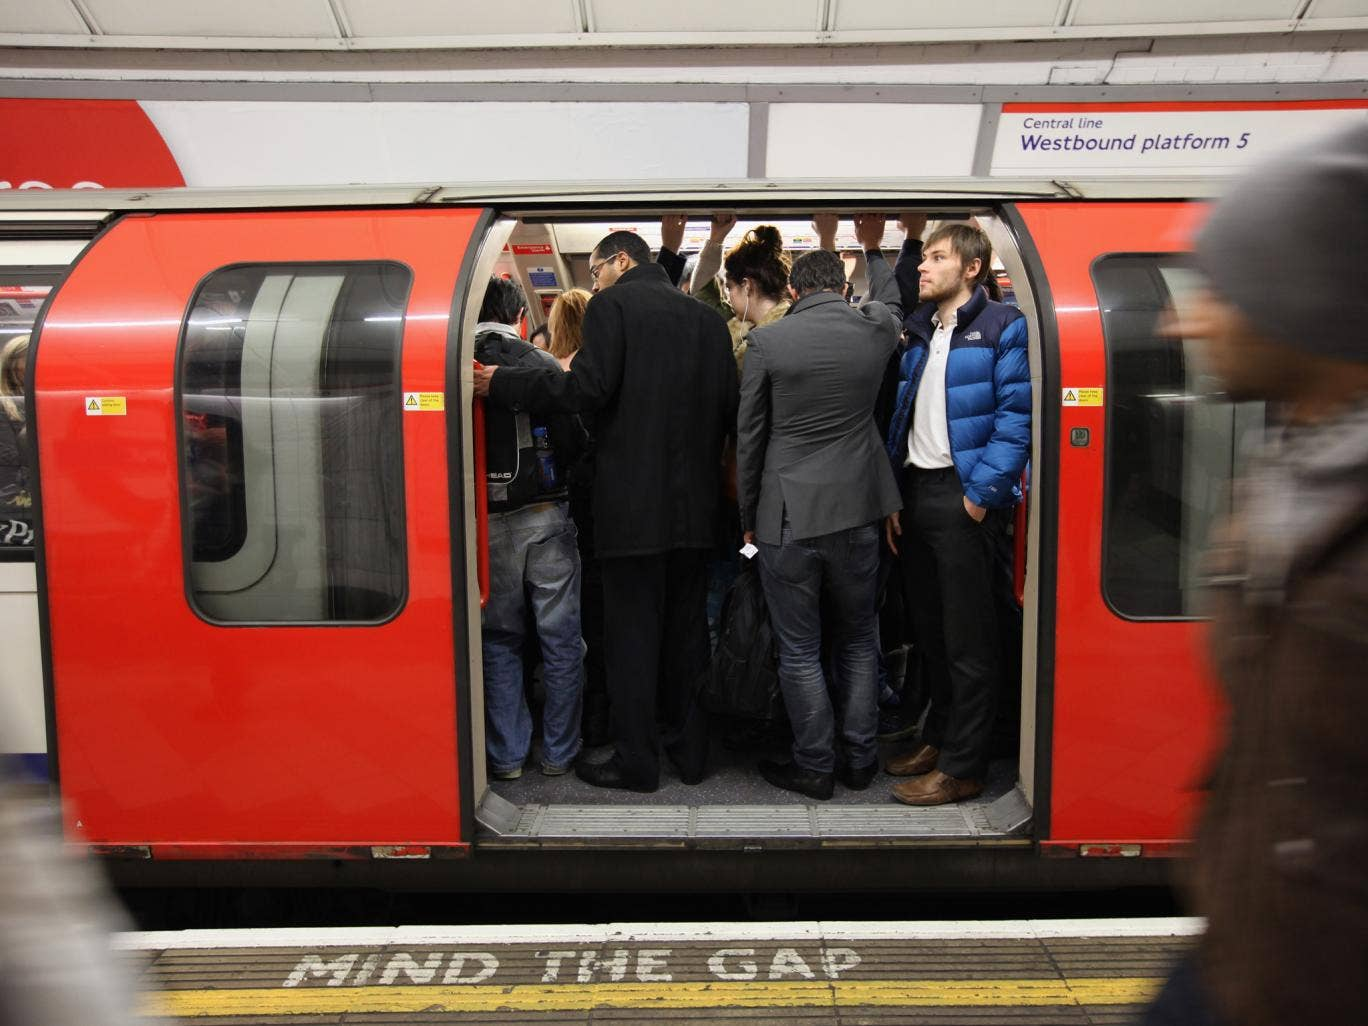 London commuters face the threat of disruption in the coming weeks